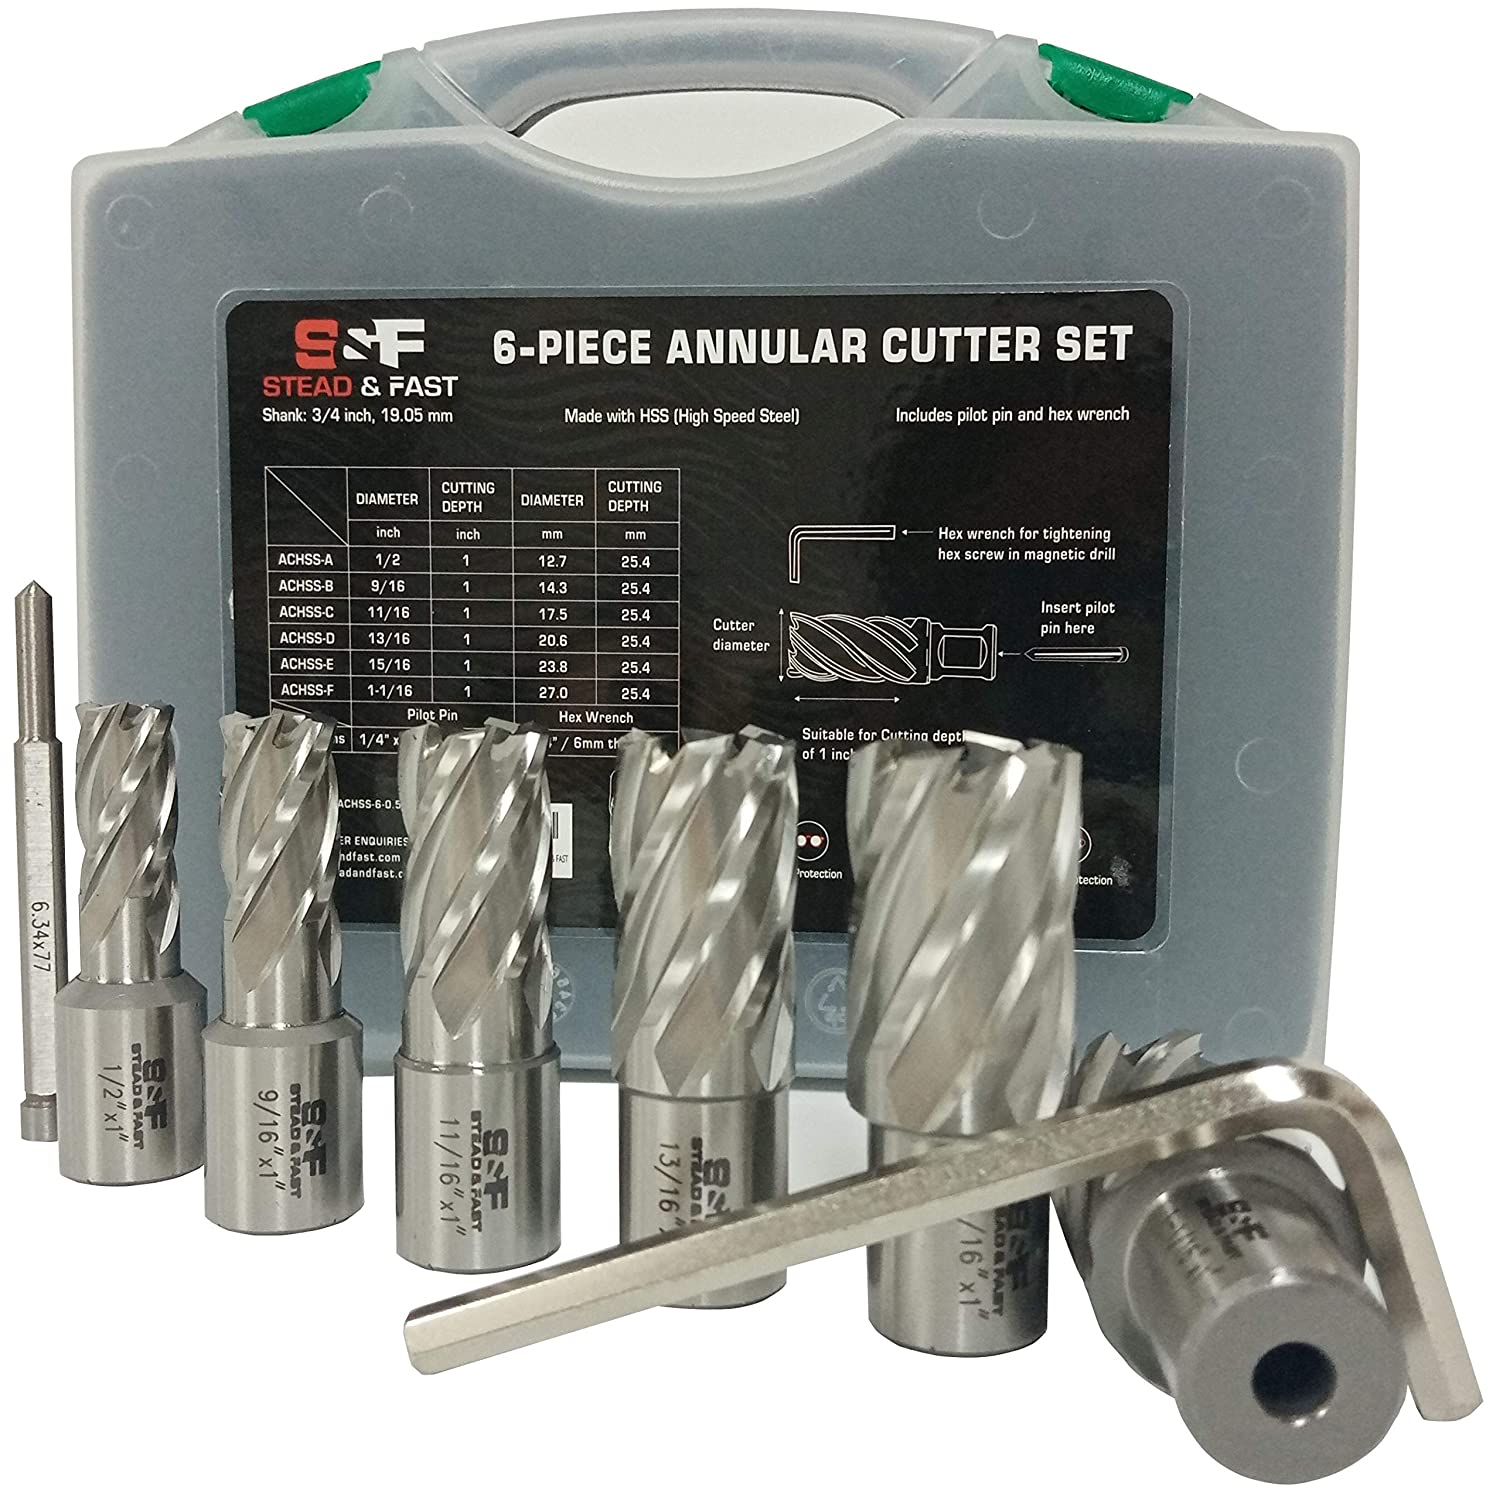 "Annular Cutter Set 6 Pcs, Weldon Shank 3/4"", Cutting Depth 1"", Outside Diameter 1/2 to 1-1/16 Inch, Mag Drill Bits Kit for Magnetic Drill Press by S&F STEAD & FAST"